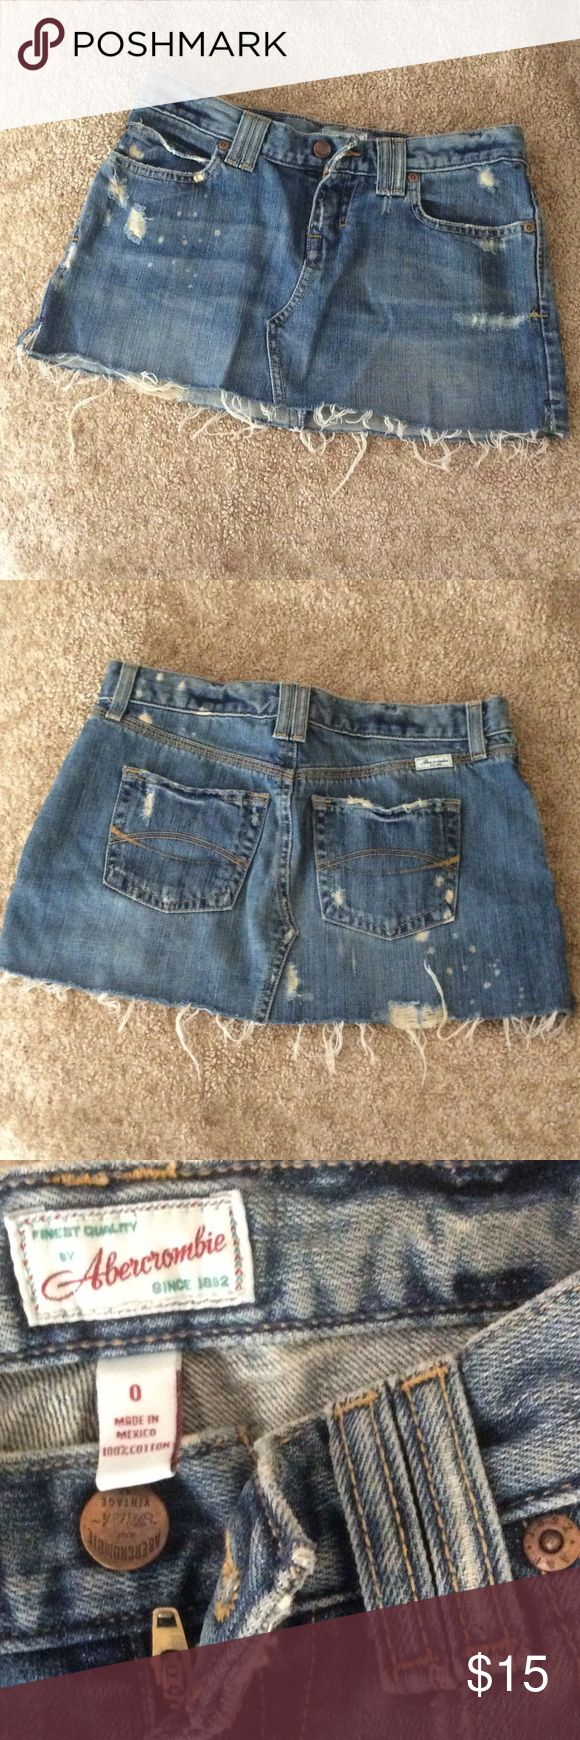 Abercrombie & Fitch distressed Jean skirt Abercrombie & Fitch distressed Jean skirt Abercrombie & Fitch Skirts Mini